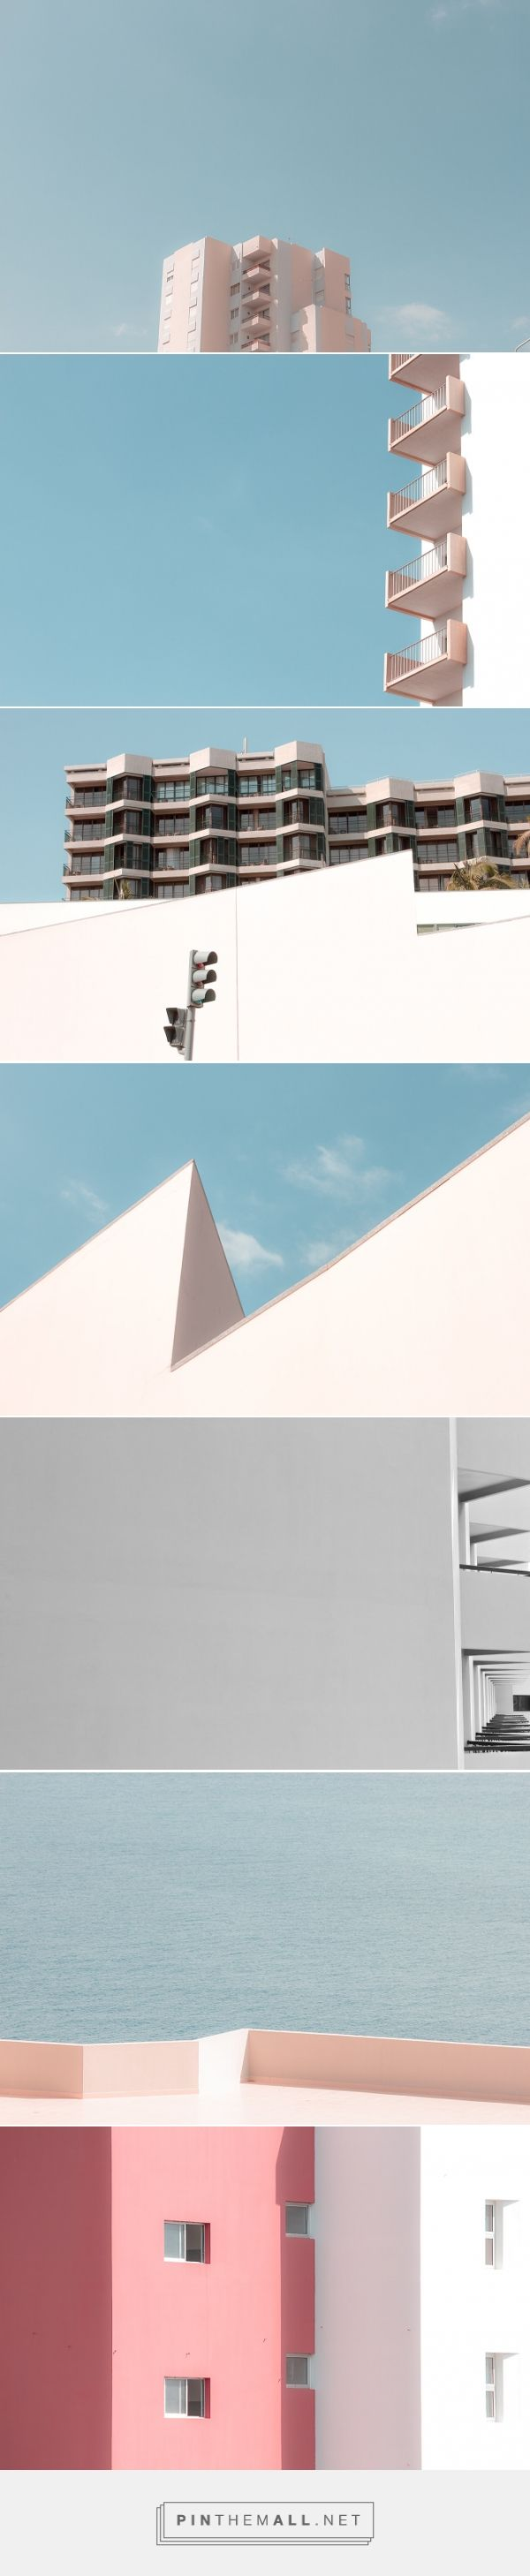 Nuno Andrade Captures Minimal Pastel Architecture Photos | iGNANT.de - created via http://pinthemall.net